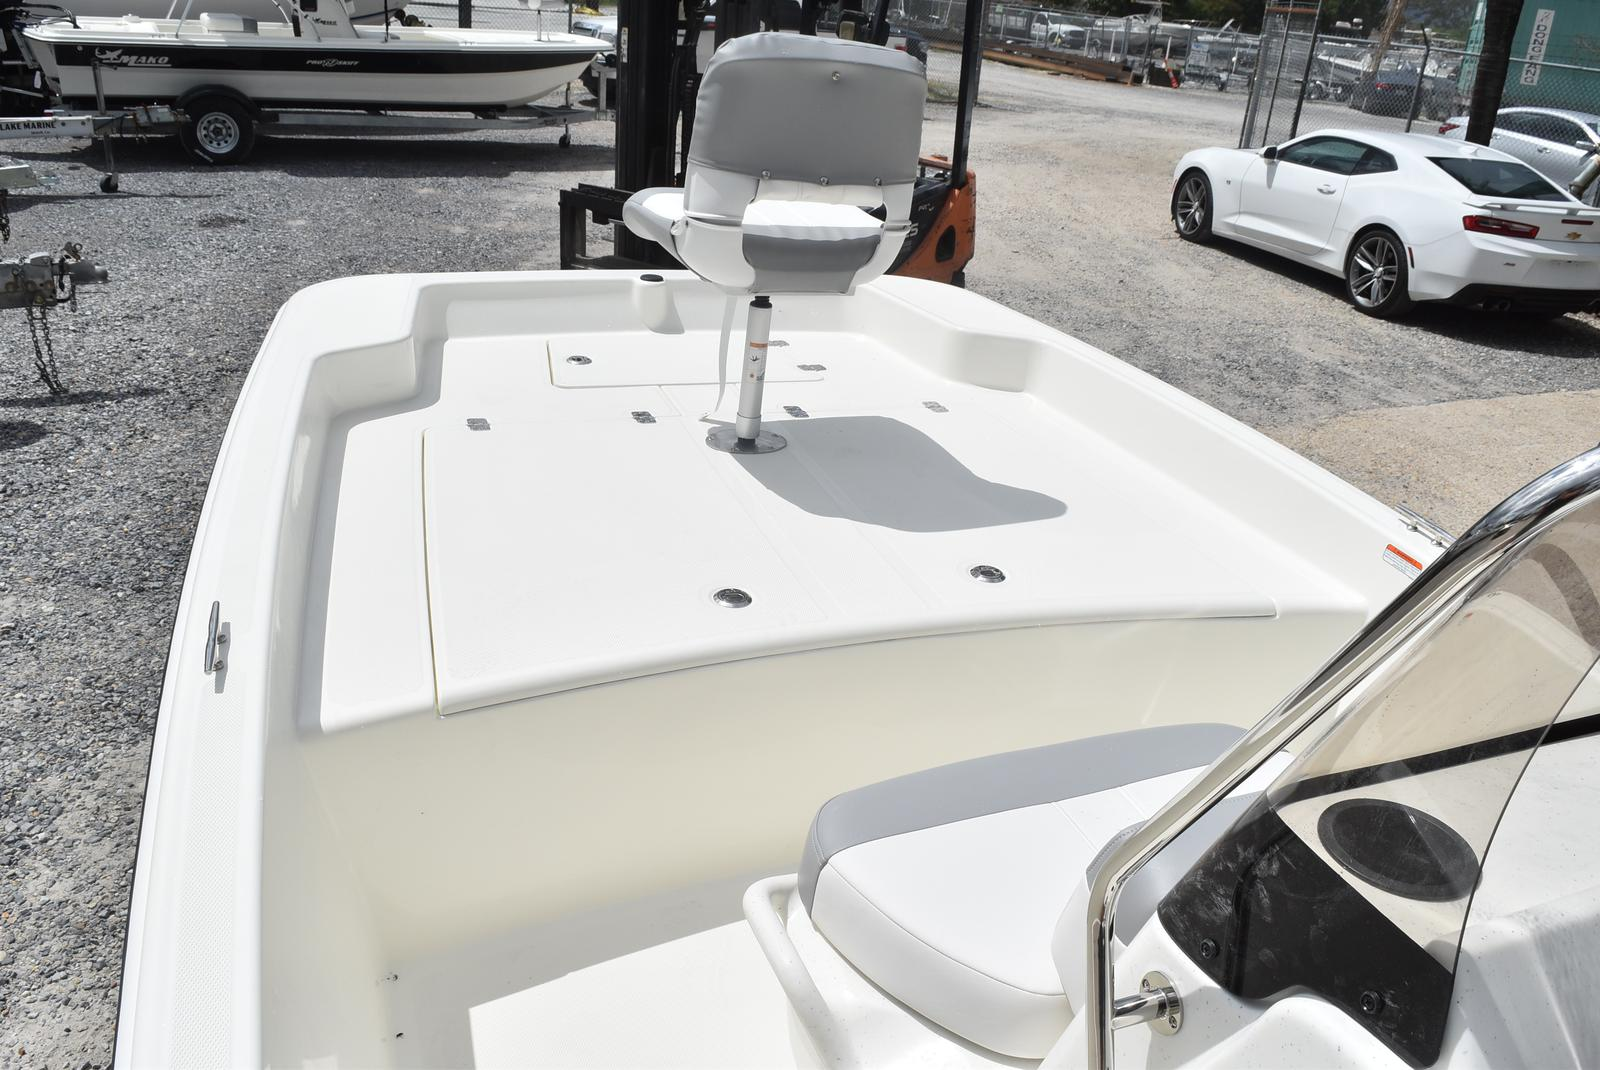 2020 Mako boat for sale, model of the boat is Pro Skiff 17, 75 ELPT & Image # 418 of 702